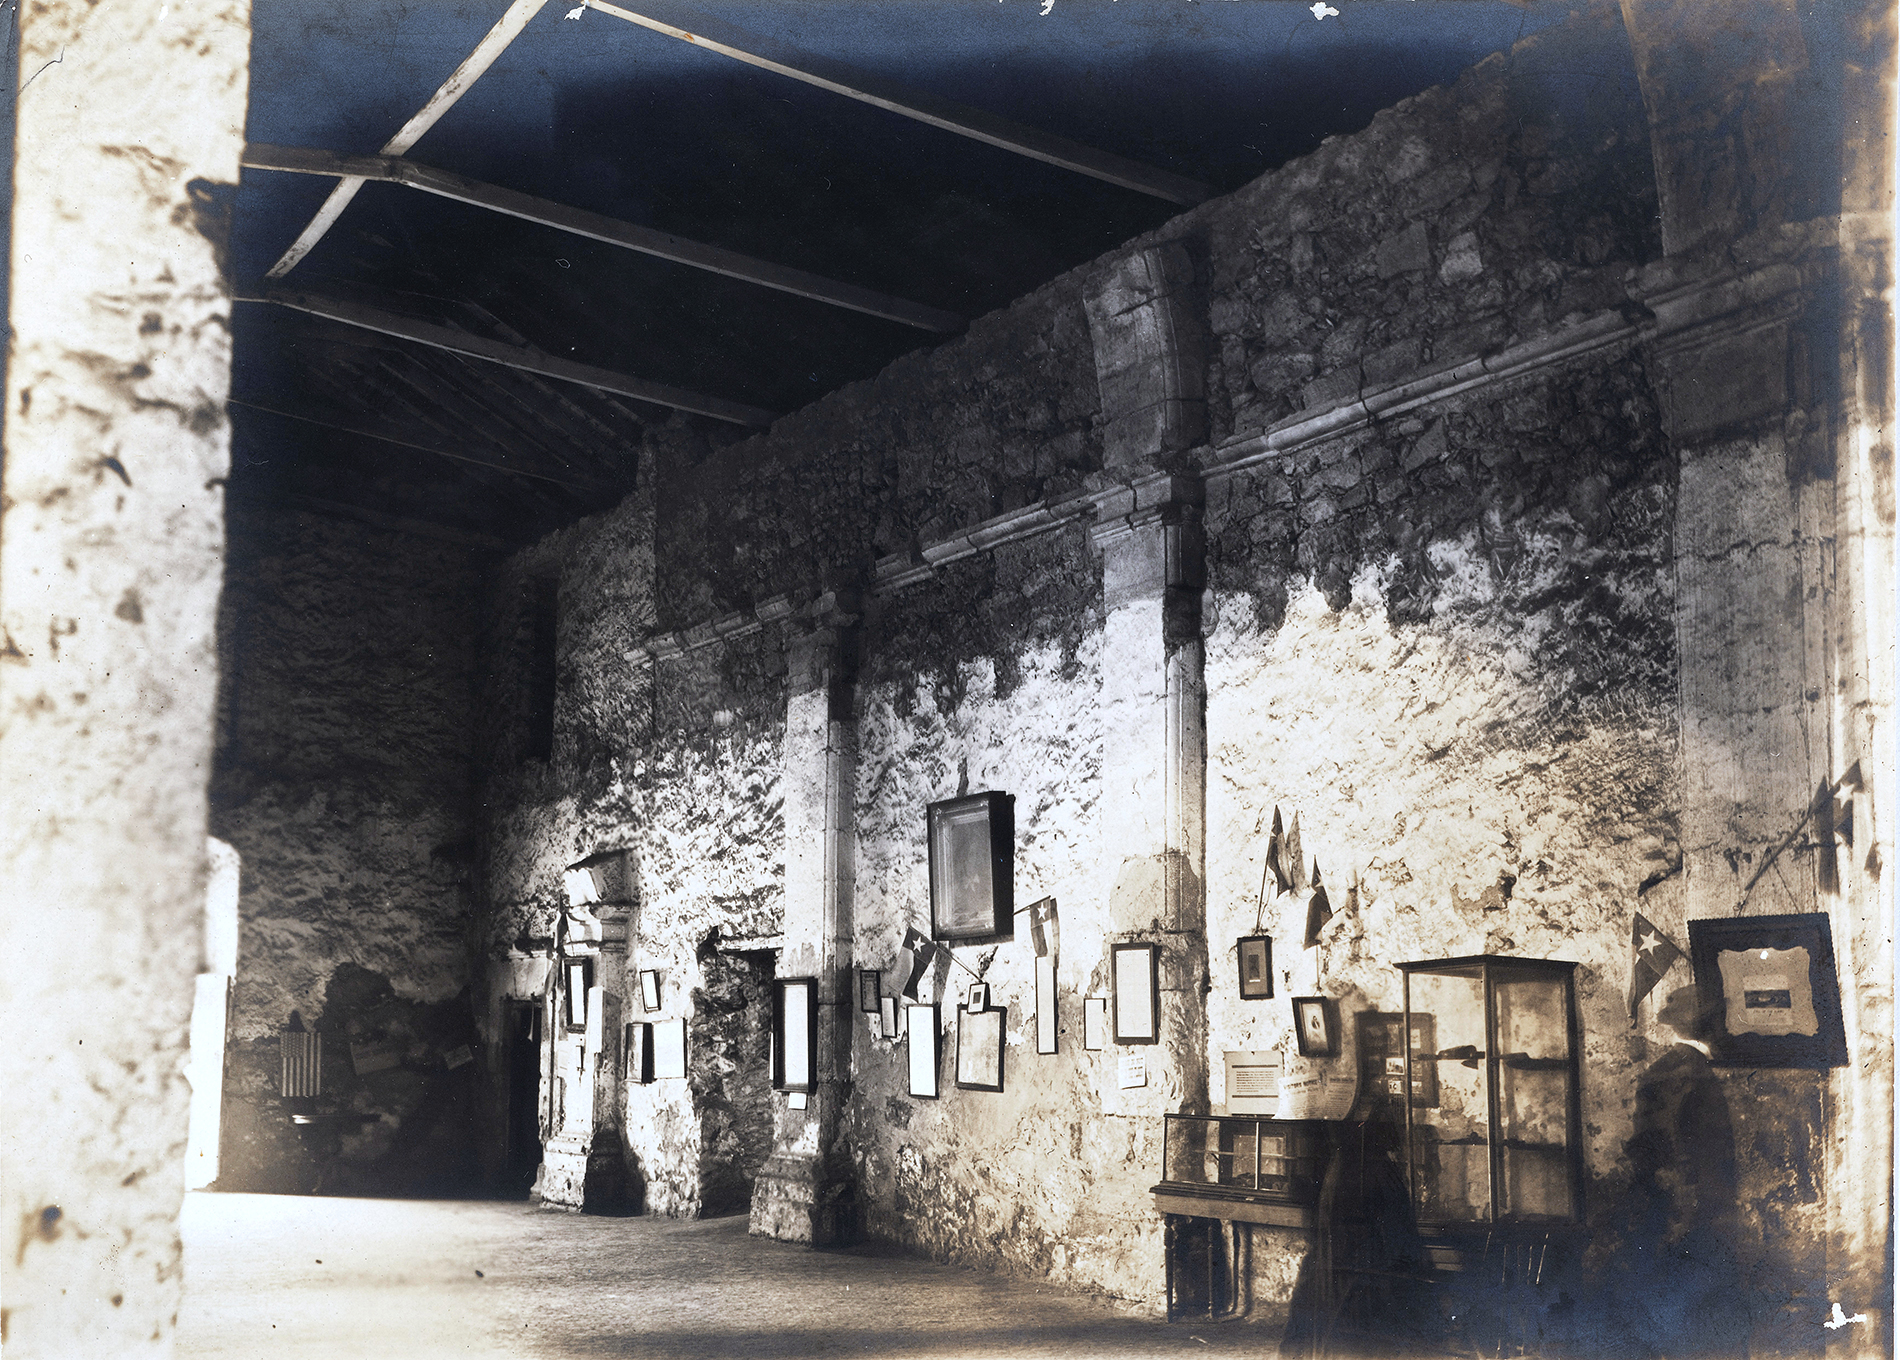 A photo of the interior of the Alamo church from the 1910s. Adina Emilia De Zavala Papers, The Dolph Briscoe Center for American History, The University of Texas at Austin.